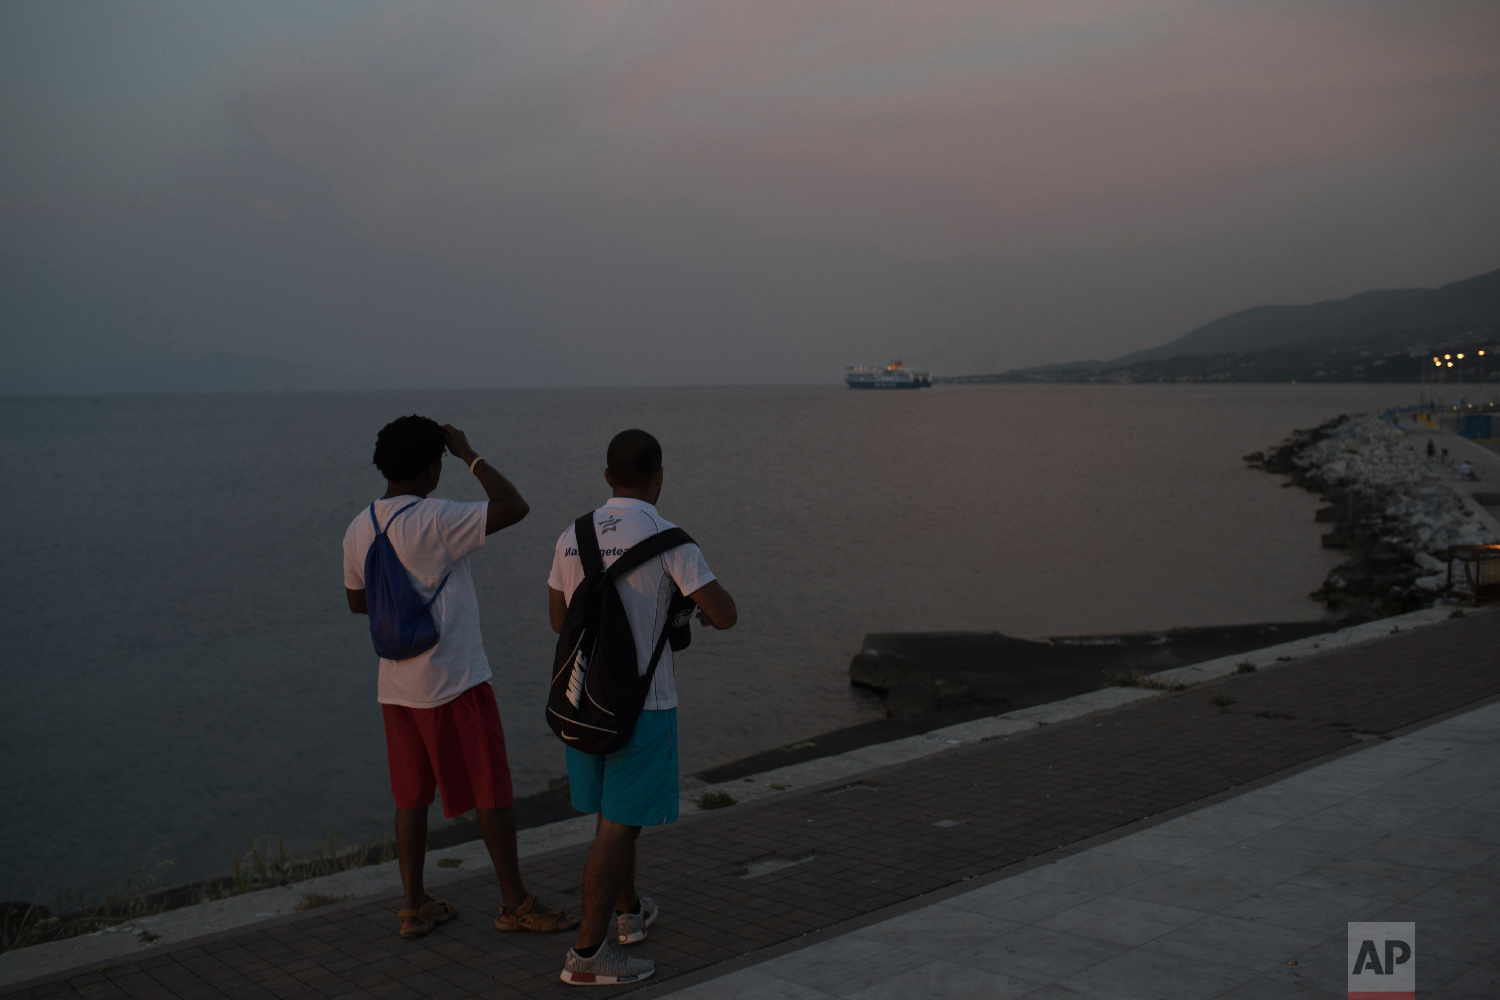 Two men watch the ferry leaving the port of Mytilene on the northeastern Aegean island of Lesbos, Greece on Thursday, May 4, 2018.  (AP Photo/Petros Giannakouris)